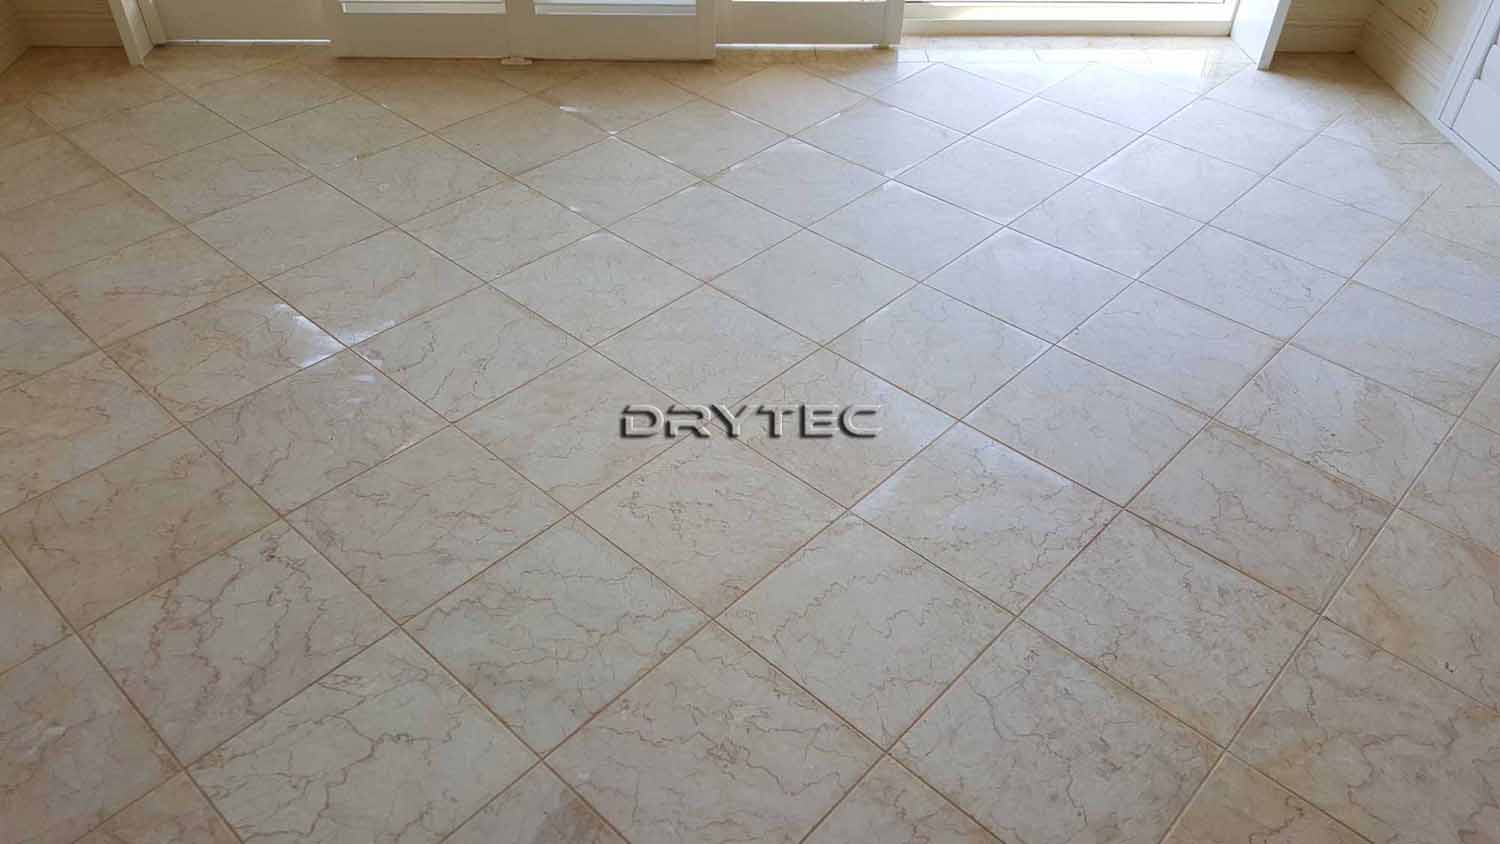 Marble Floor Tiles Restoration-Grinding-Honing-Polishing-Cleaning and Sealing